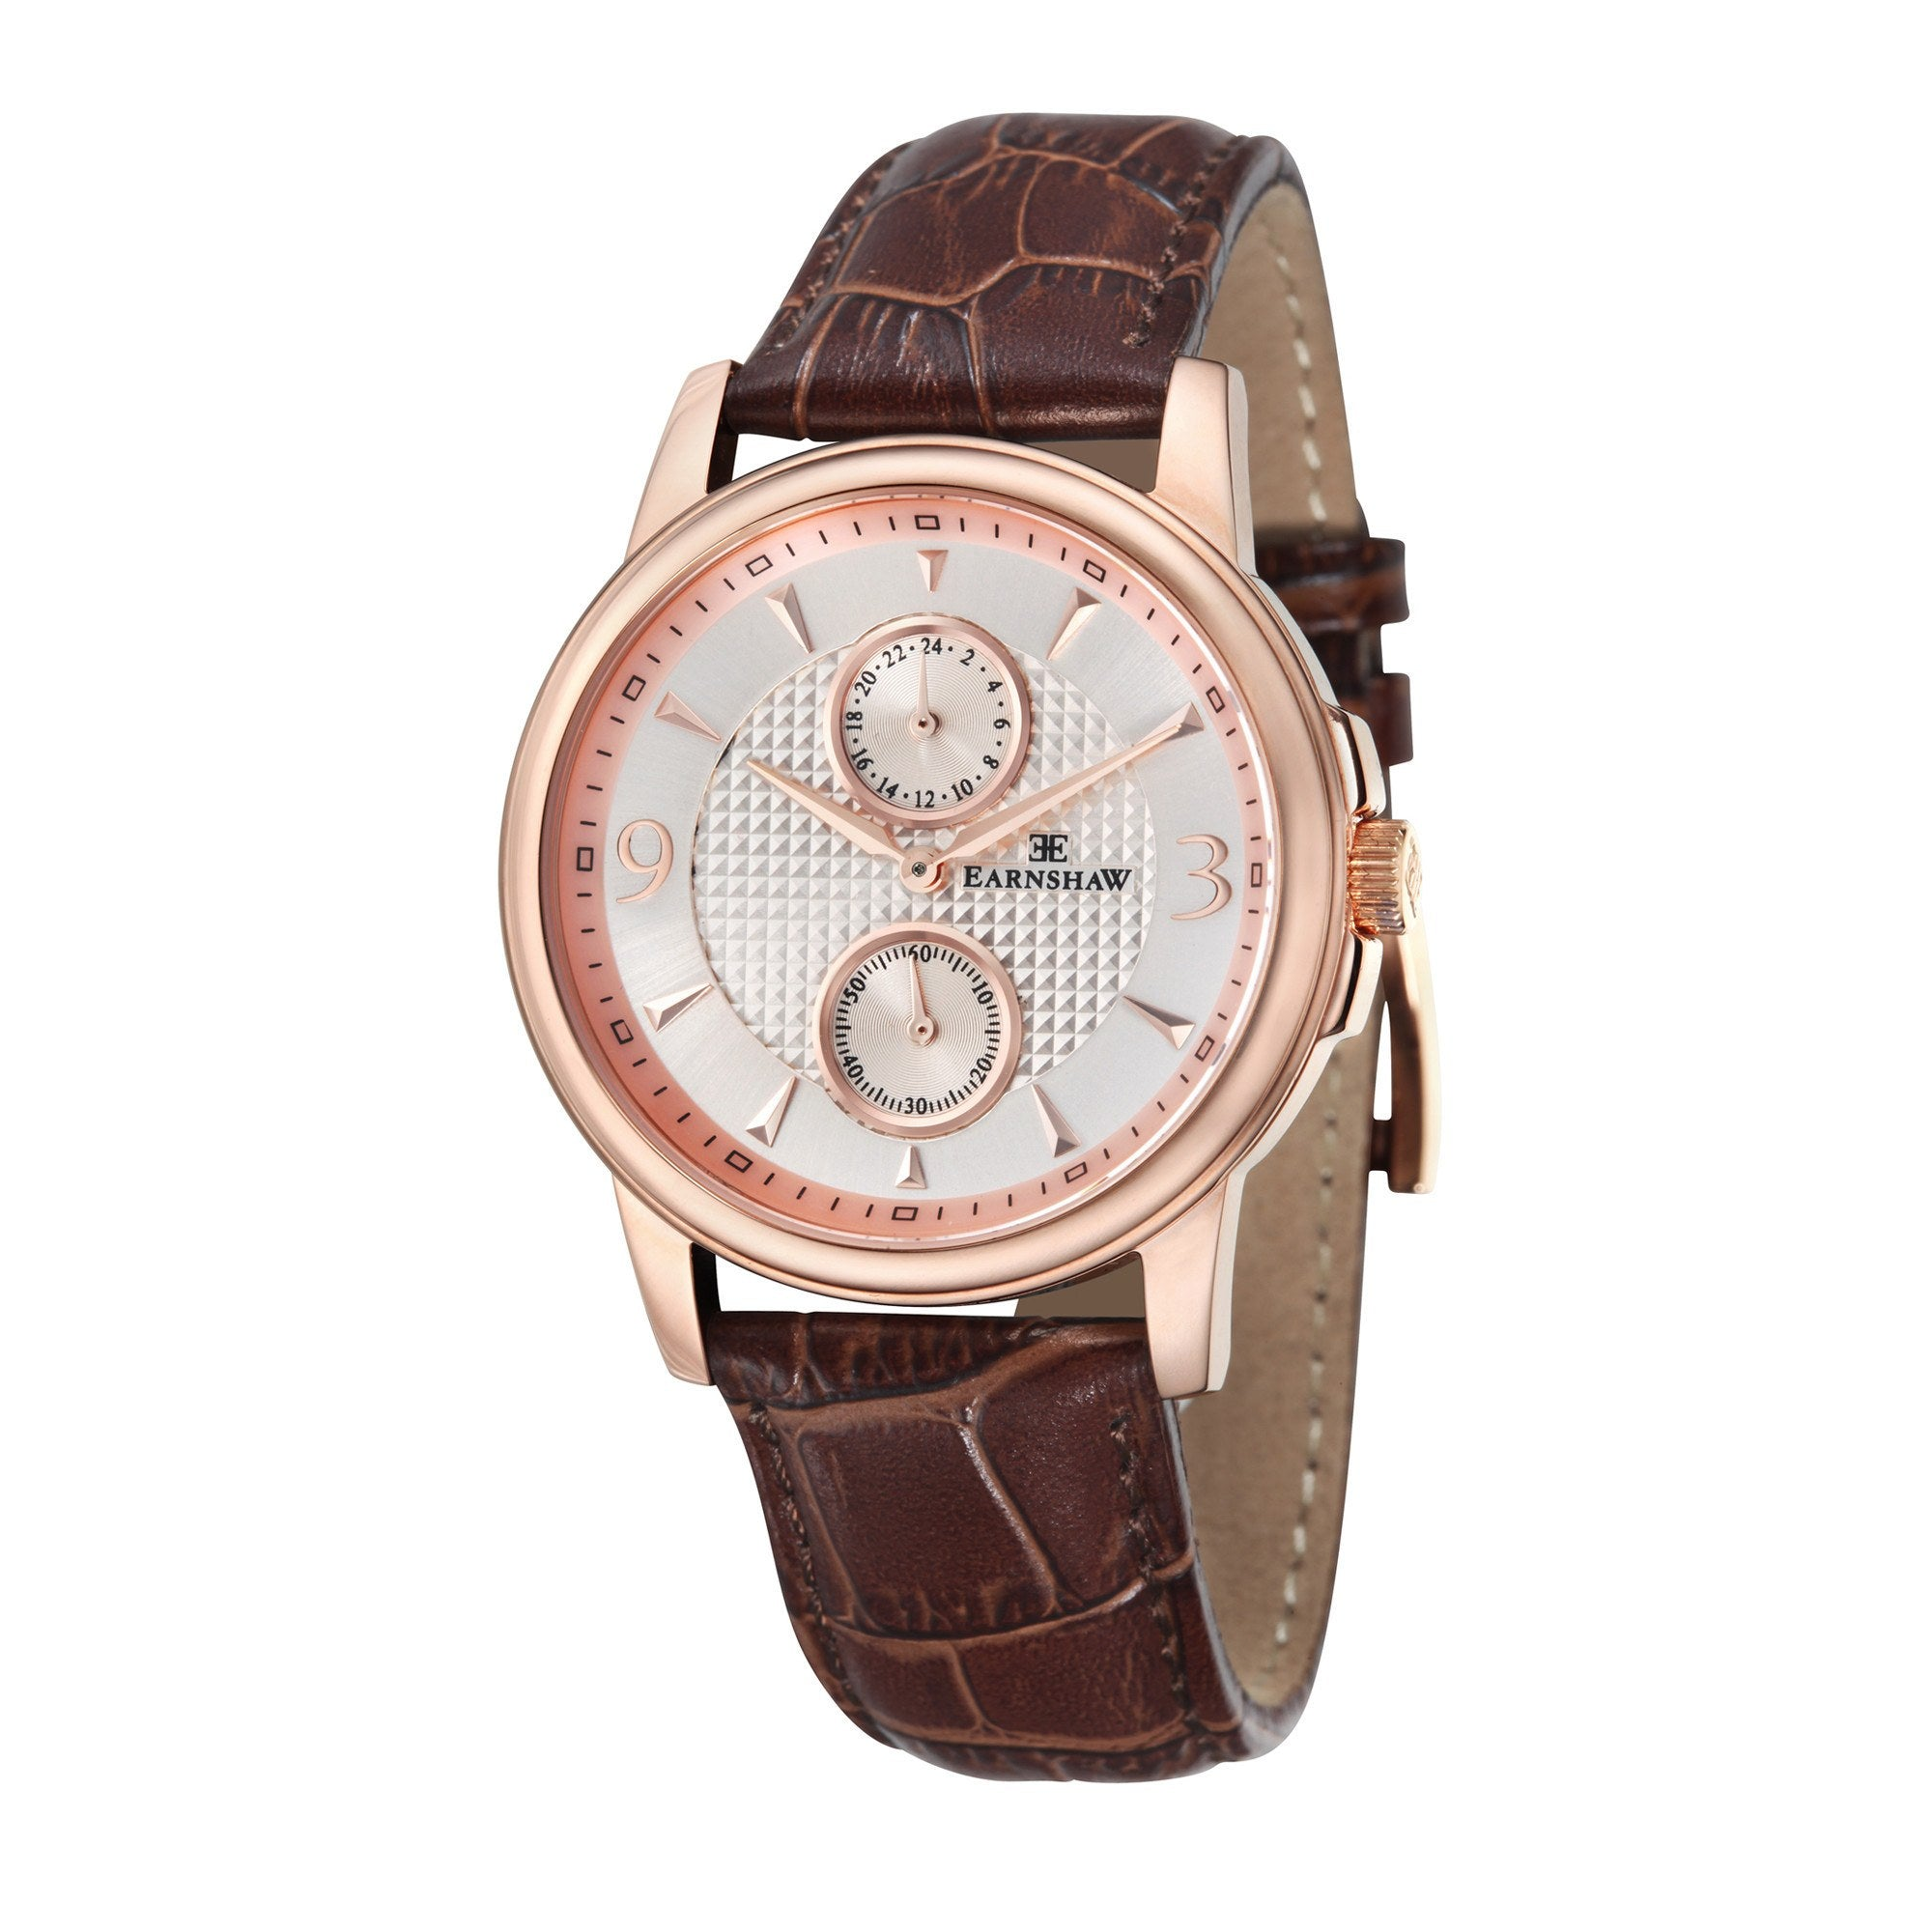 dial amazon india d prices analog buy watch at in gold low womens watches rosegold online geneva dp rose women s